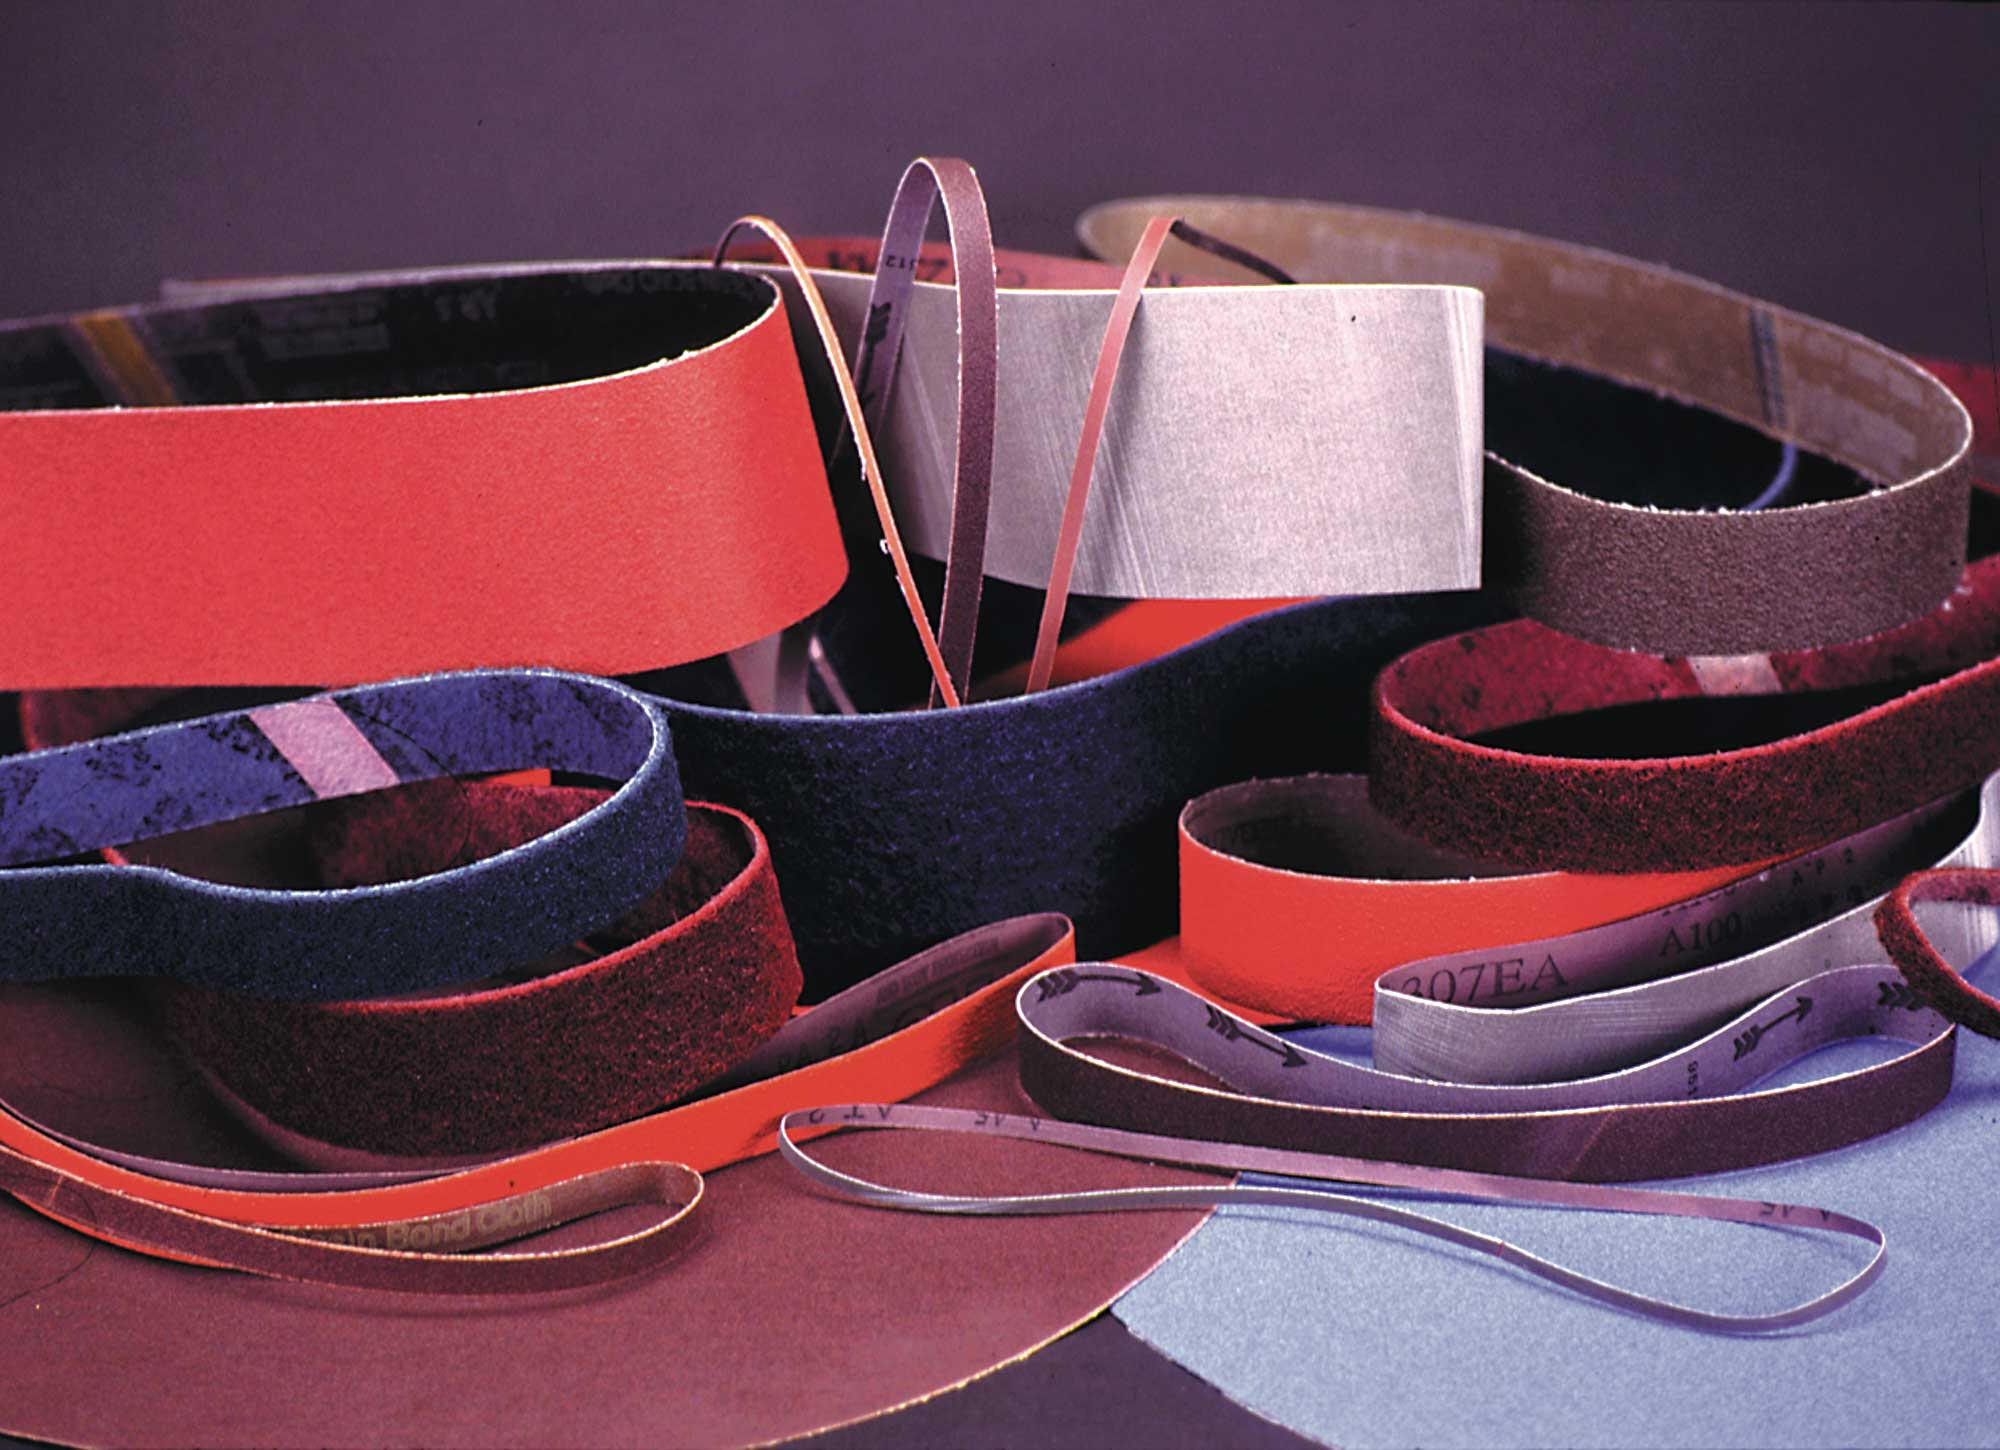 Abrasive belts of all sizes available for your belt grinder